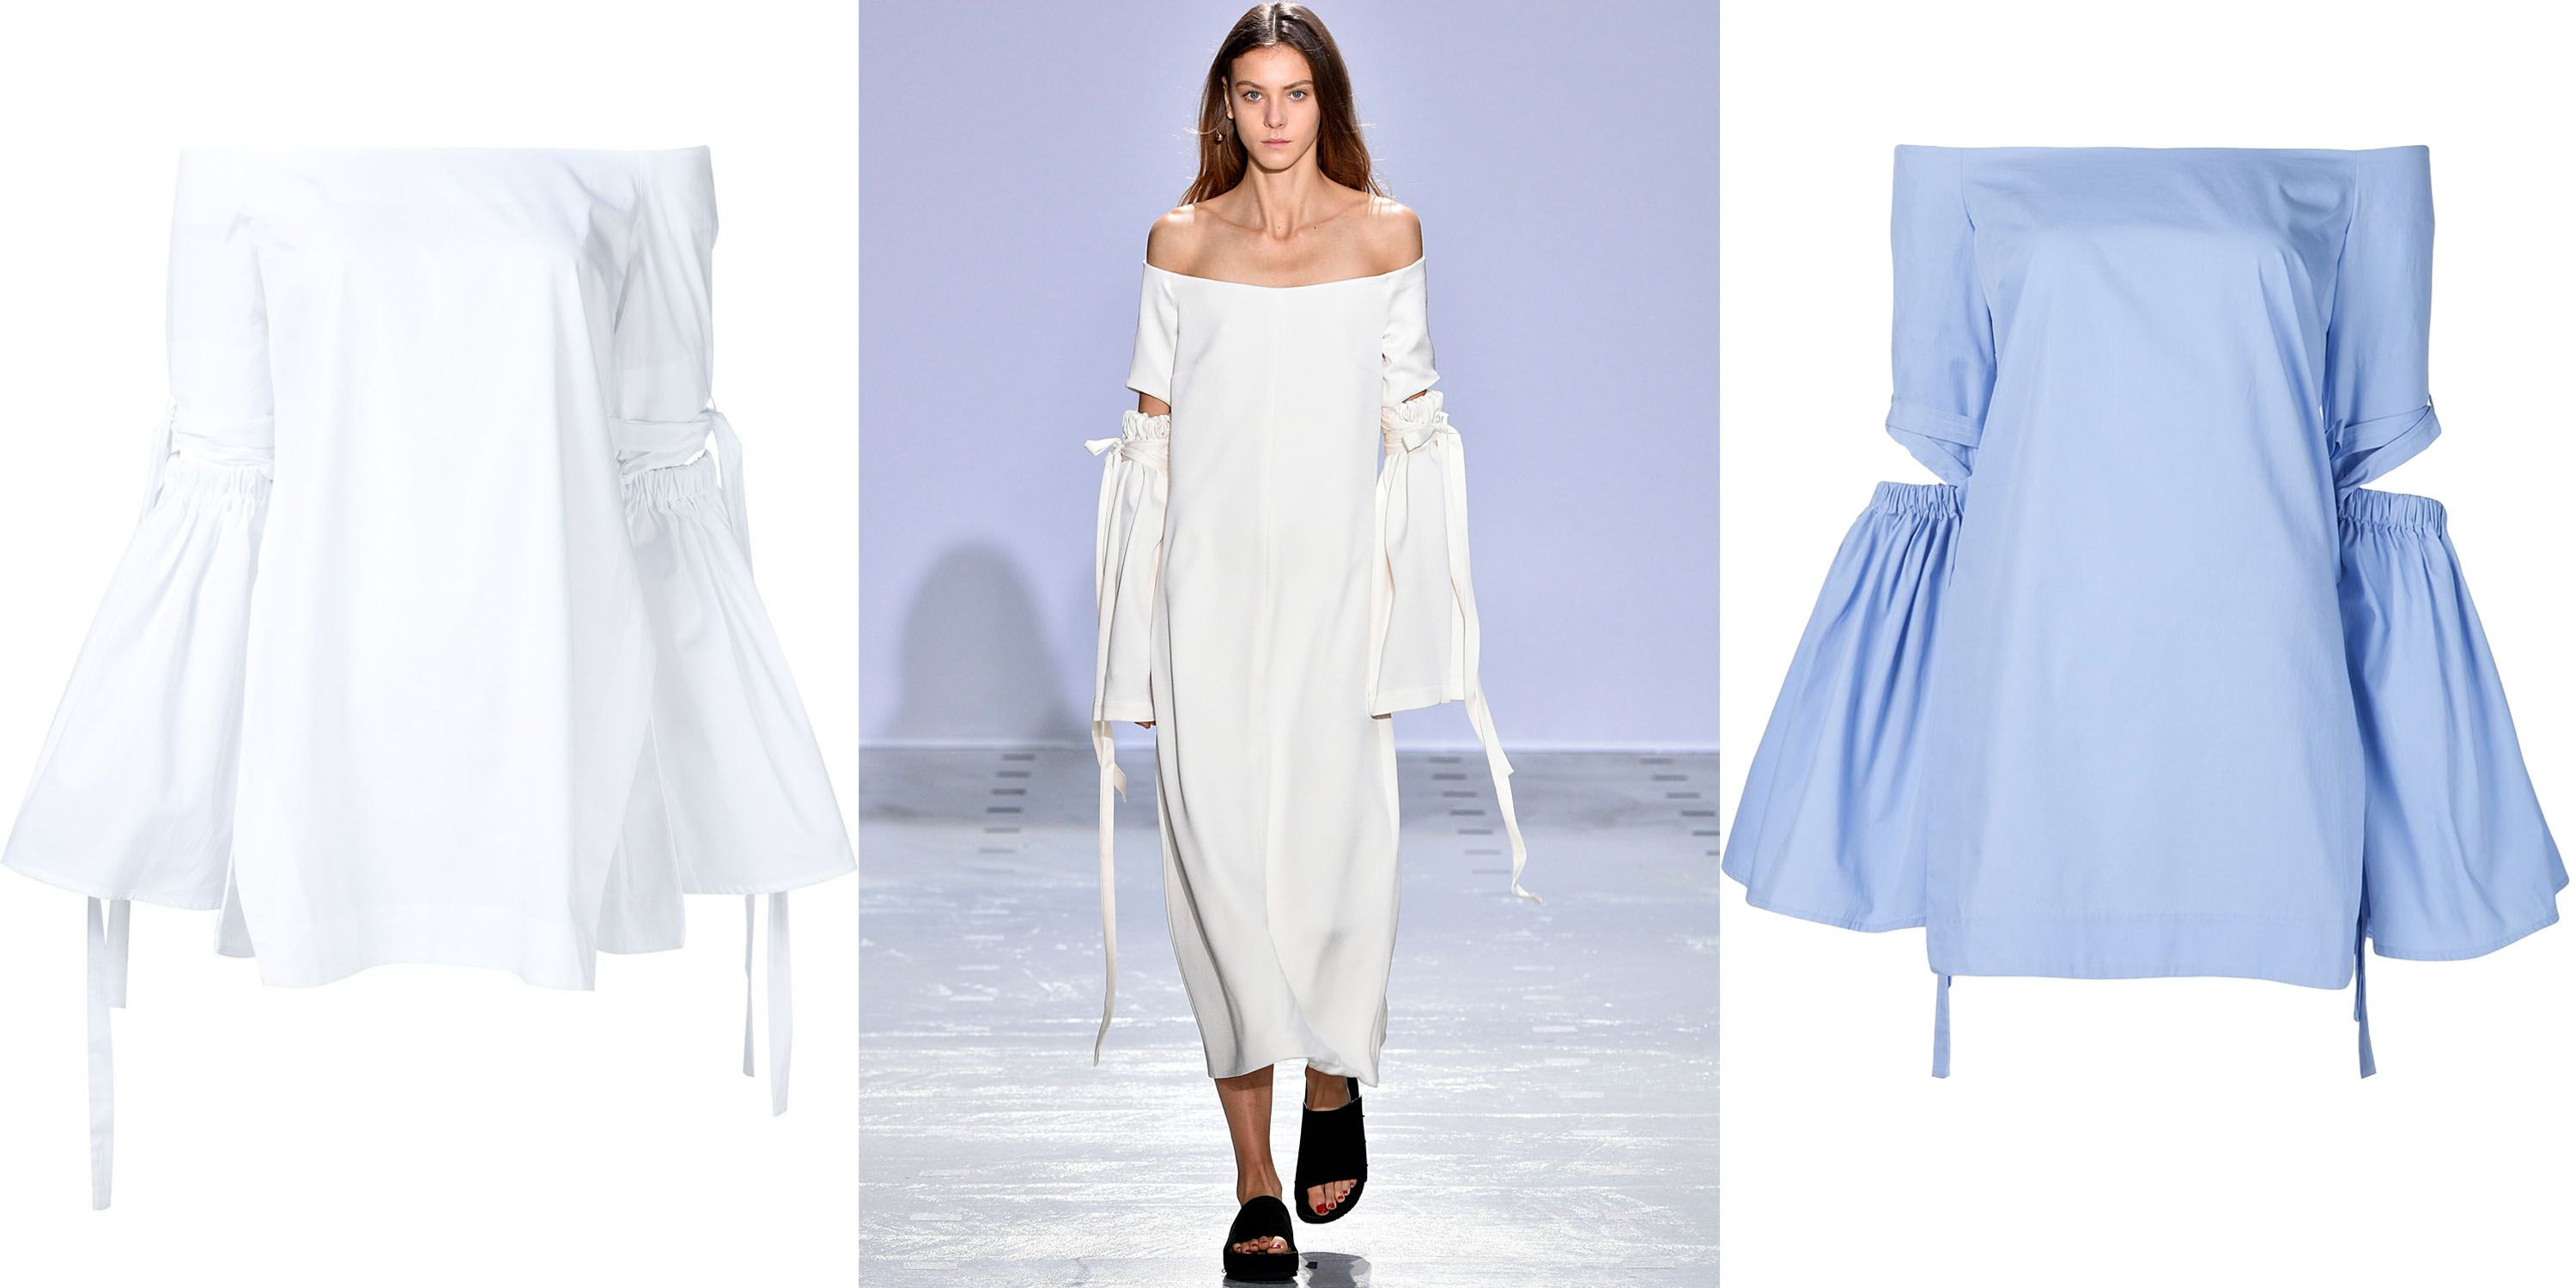 "<p>The most effortless way to show some skin this season is with an off-the-shoulder top. Opt for one with some additional detail to ensure you stand out from the crowd.</p><p><em><strong>Ellery</strong> off-the-shoulder top in white, 0, <strong><a href=""https://shop.harpersbazaar.com/designers/e/ellery/off-shoulder-elbow-cut-top-9008.html"" target=""_blank"">shopBAZAAR.com</a></strong>; <strong>Ellery</strong> off-the-shoulder top in blue, 0, <strong><a href=""https://shop.harpersbazaar.com/designers/e/ellery/off-shoulder-elbow-cut-top-blue-8989.html"" target=""_blank"">shopBAZAAR.com</a></strong>. </em></p>"